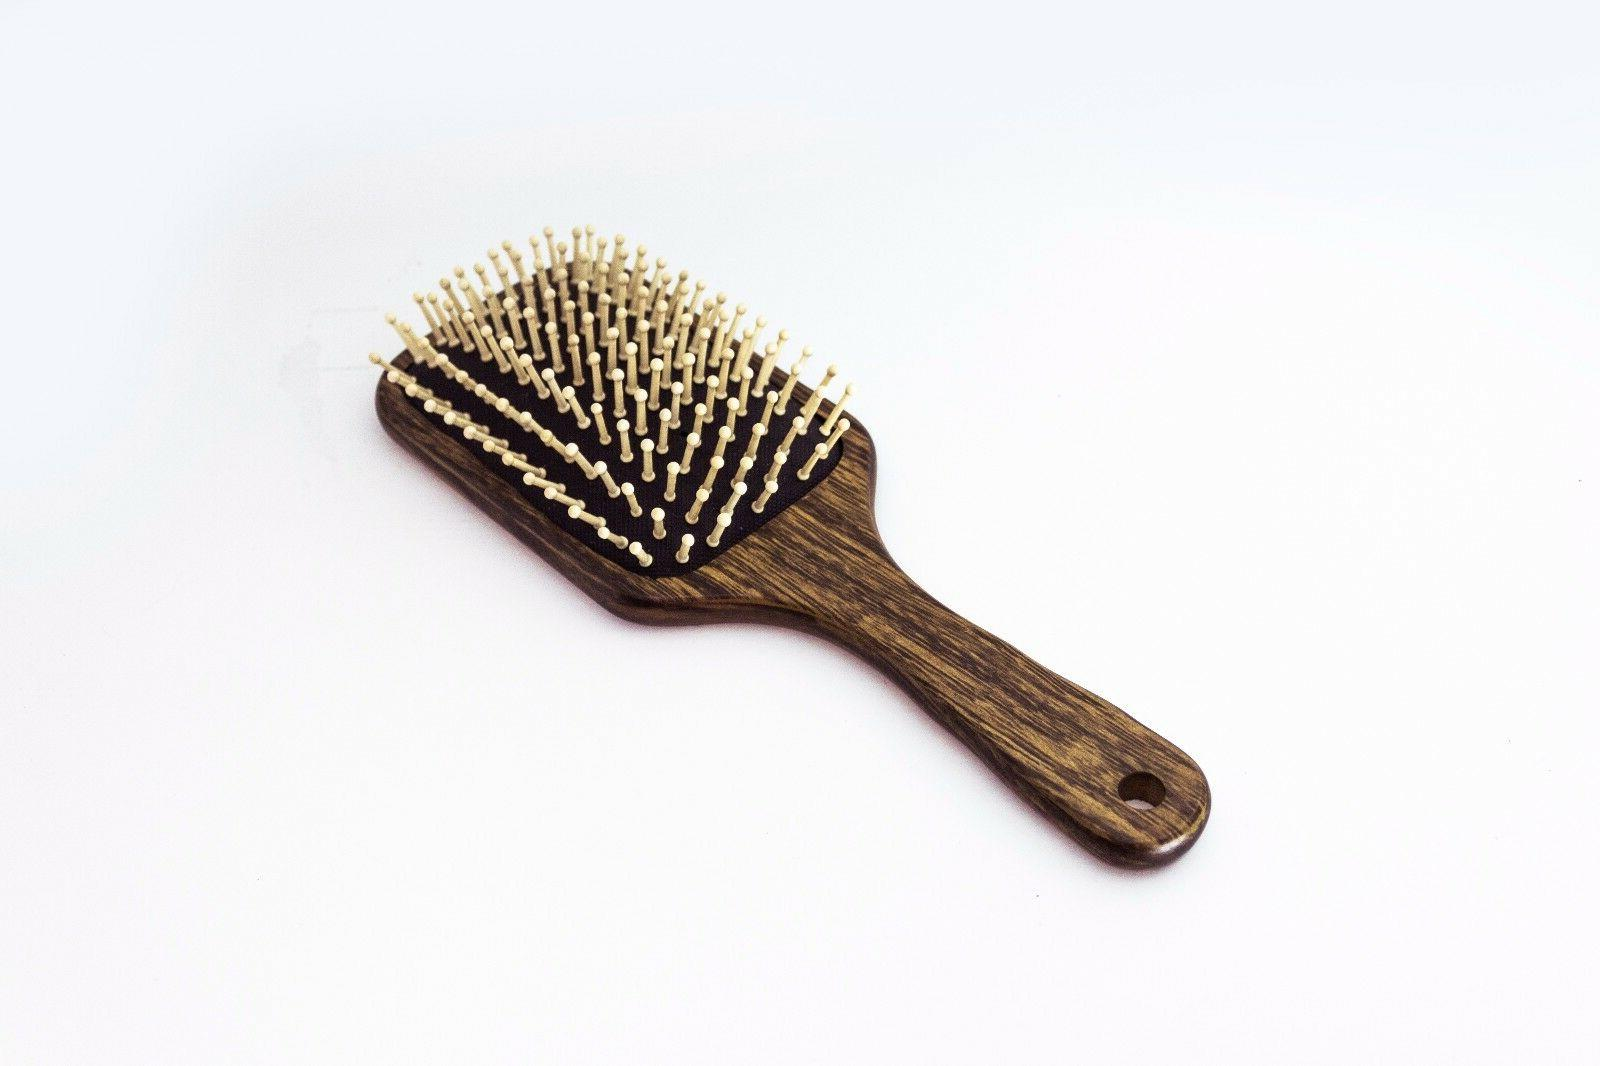 BeautyFrizz Eco Non-Irritating Wooden Brush for Use.